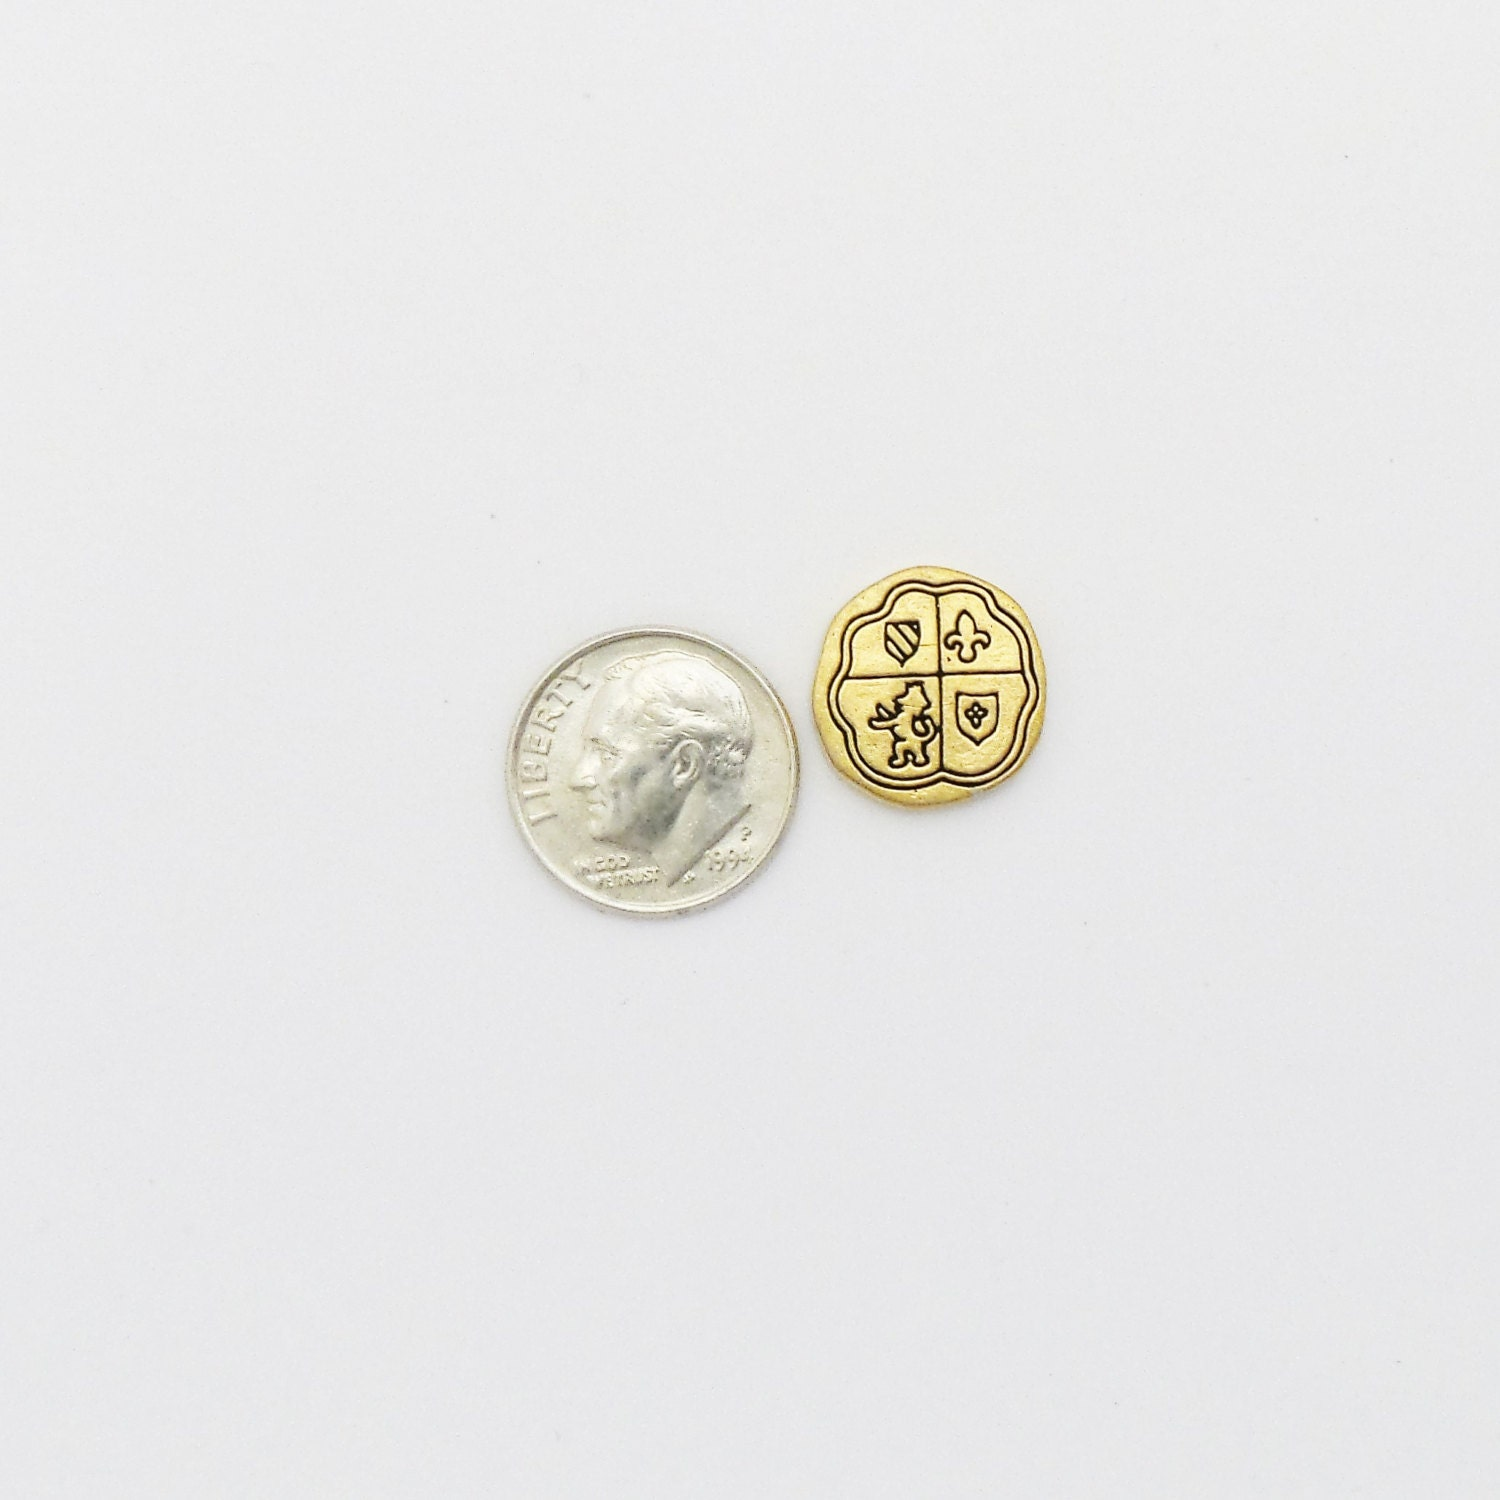 etsy on shopdeborahbrewerjewelry find or your gold coin special medallion pin